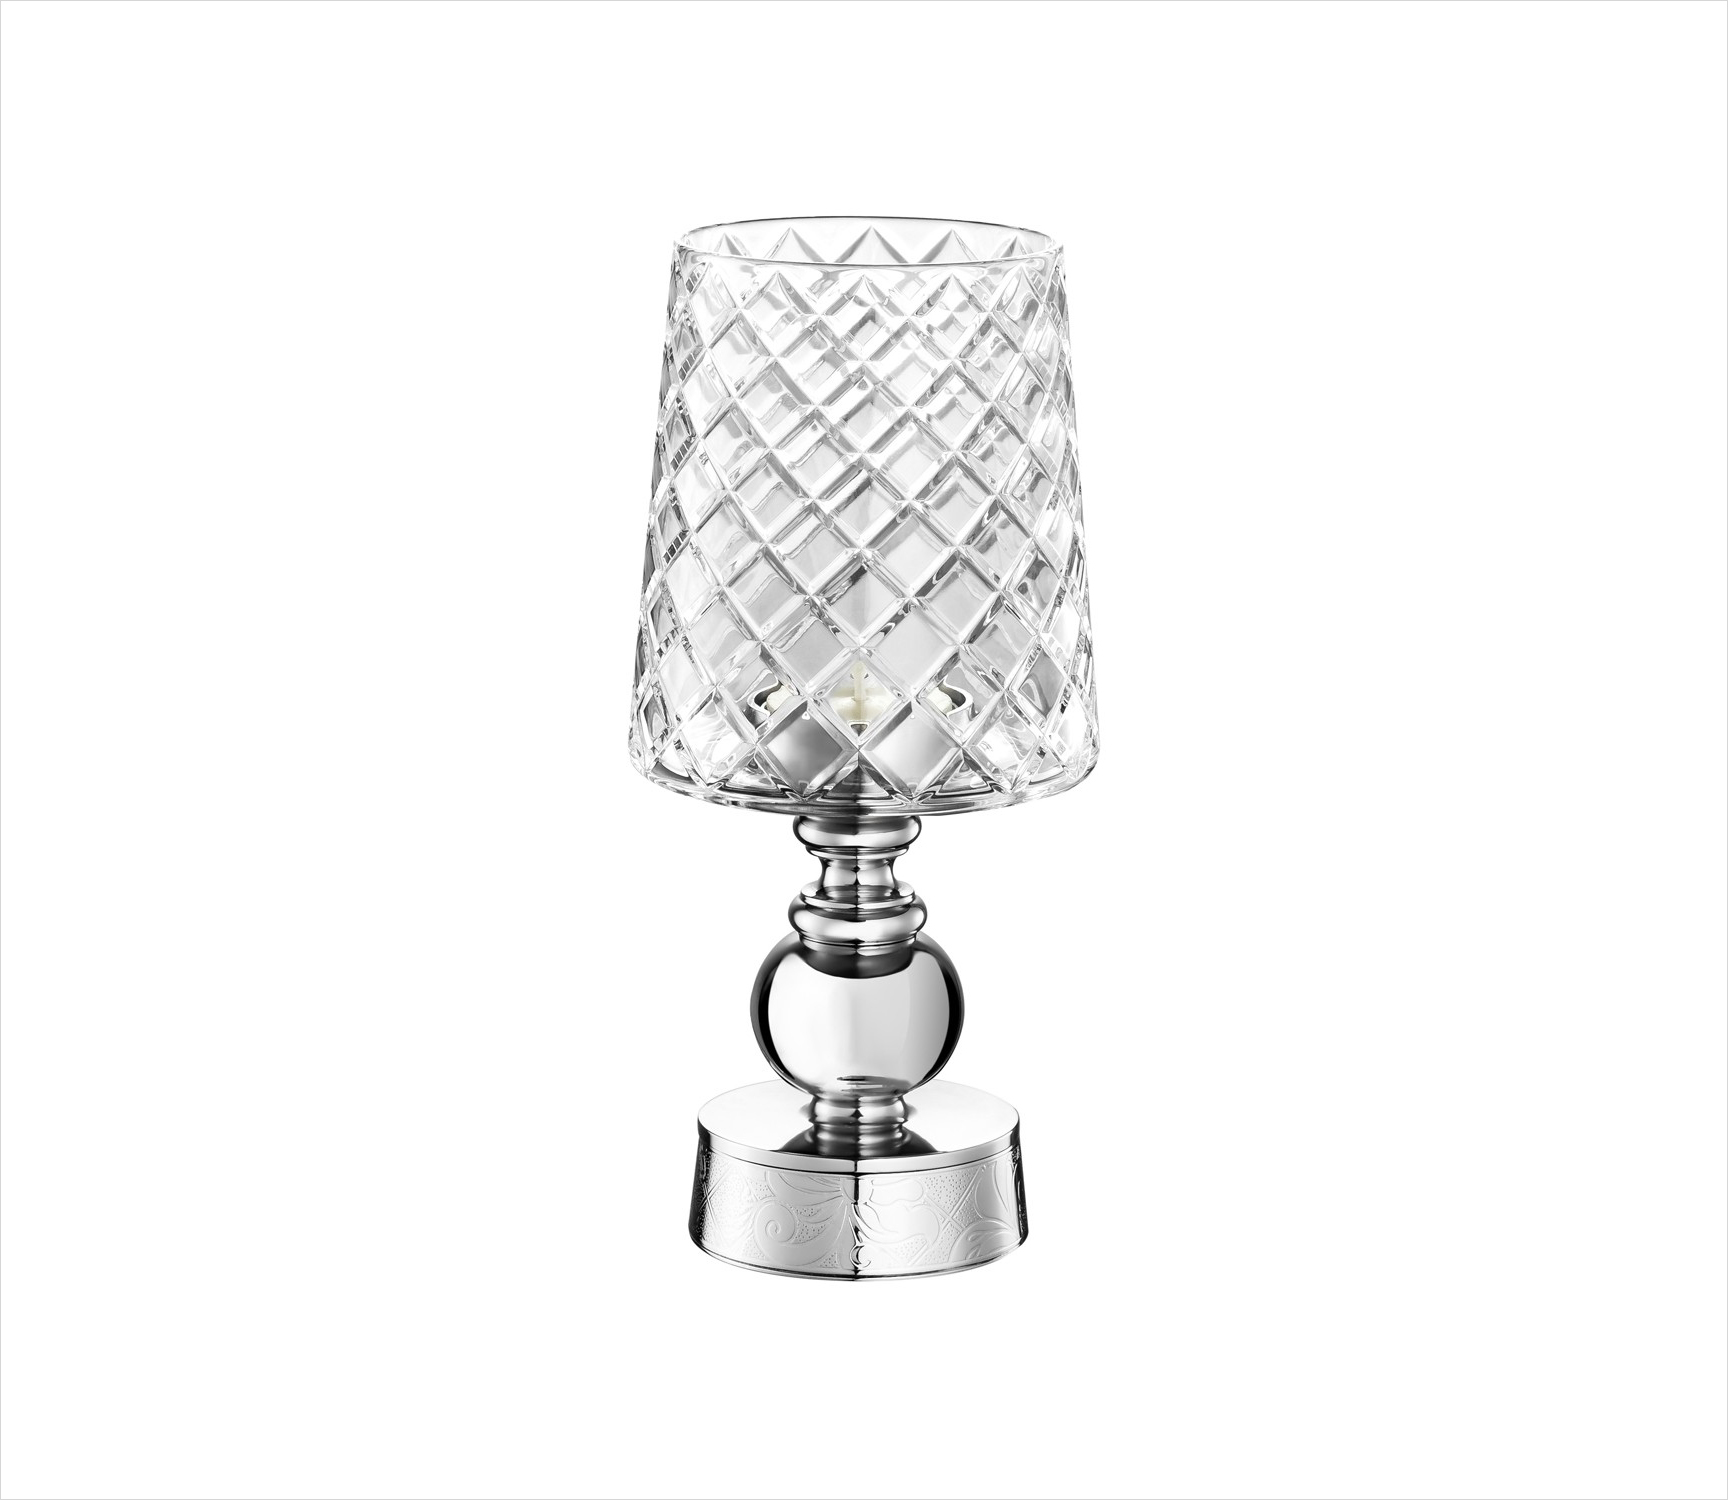 Jardin d'Eden votive lamp with crystal shade Christofle from Gearys Beverly Hills wedding registry ideas